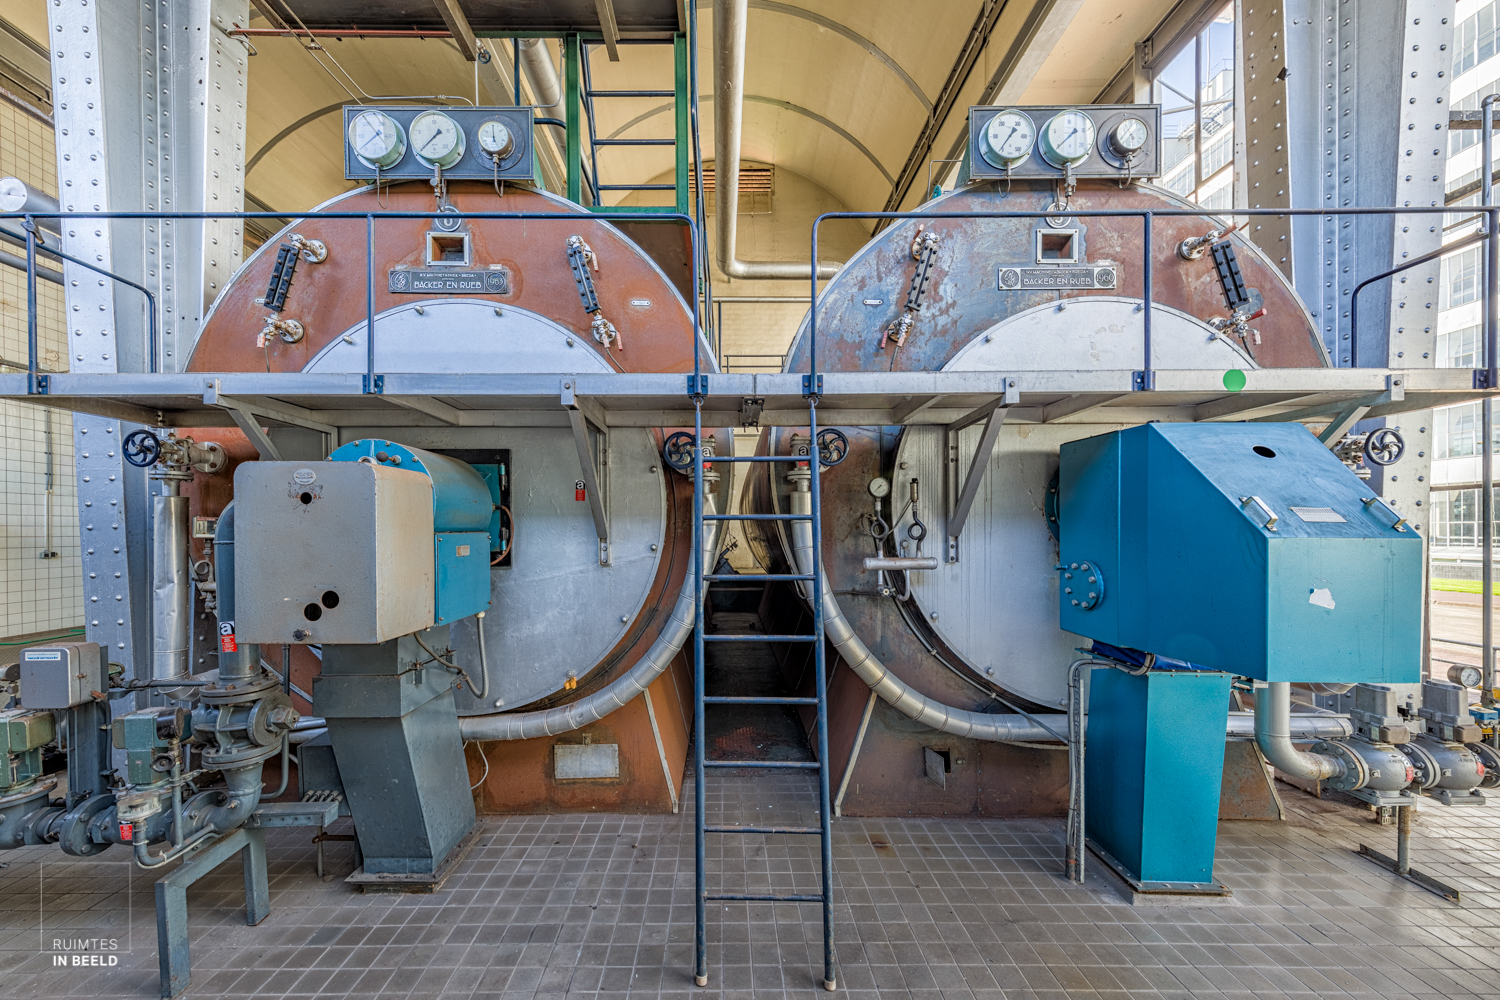 Machine room of the Van Nelle Factory, since 2014 on the list of UNESCO as a World Heritage site